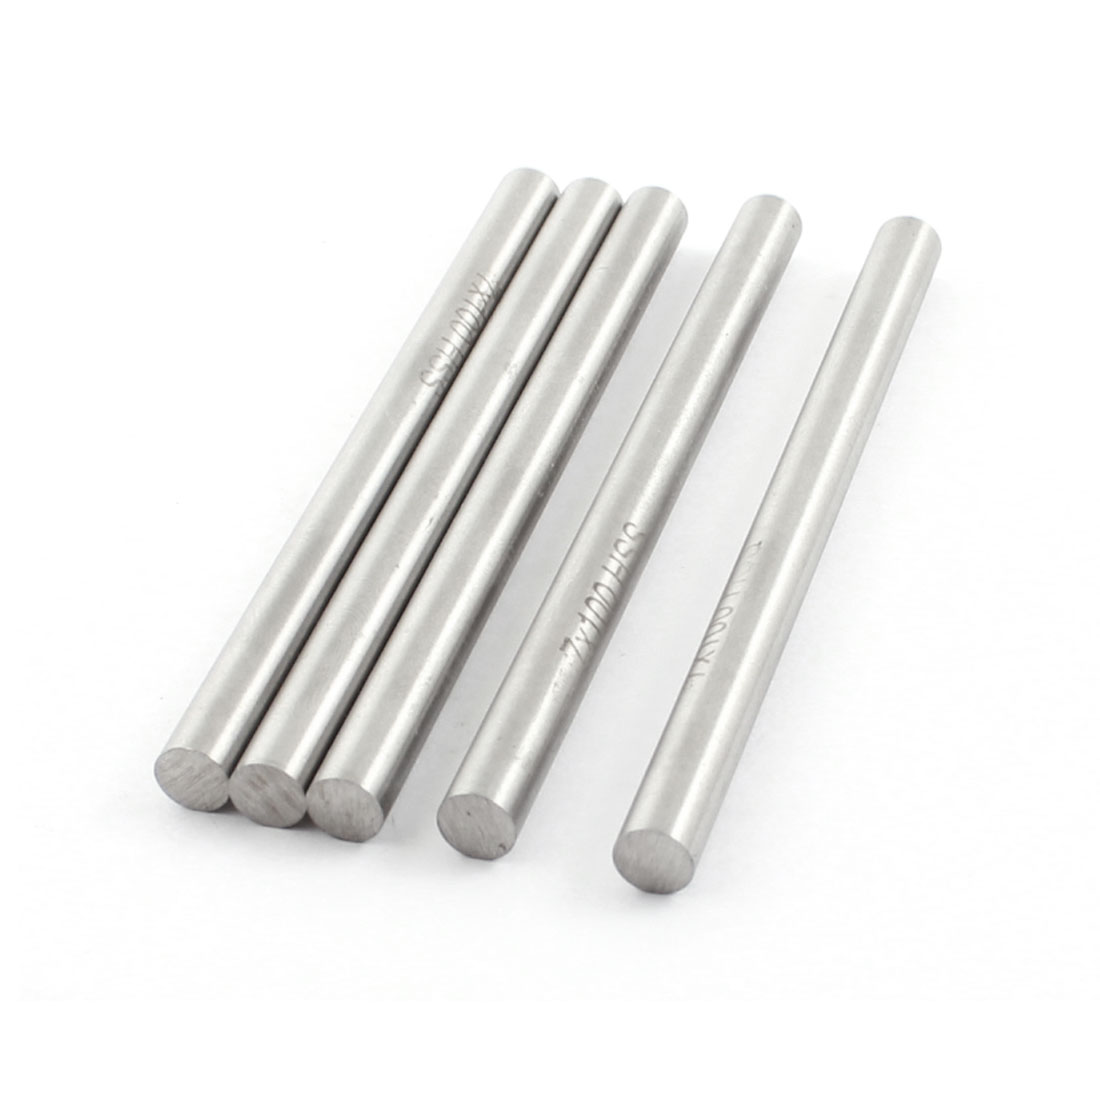 5 Pcs 7mm x 100mm Silver Tone High Speed Steel Straight Machine Turning Tool Round Lathe Bar Rod